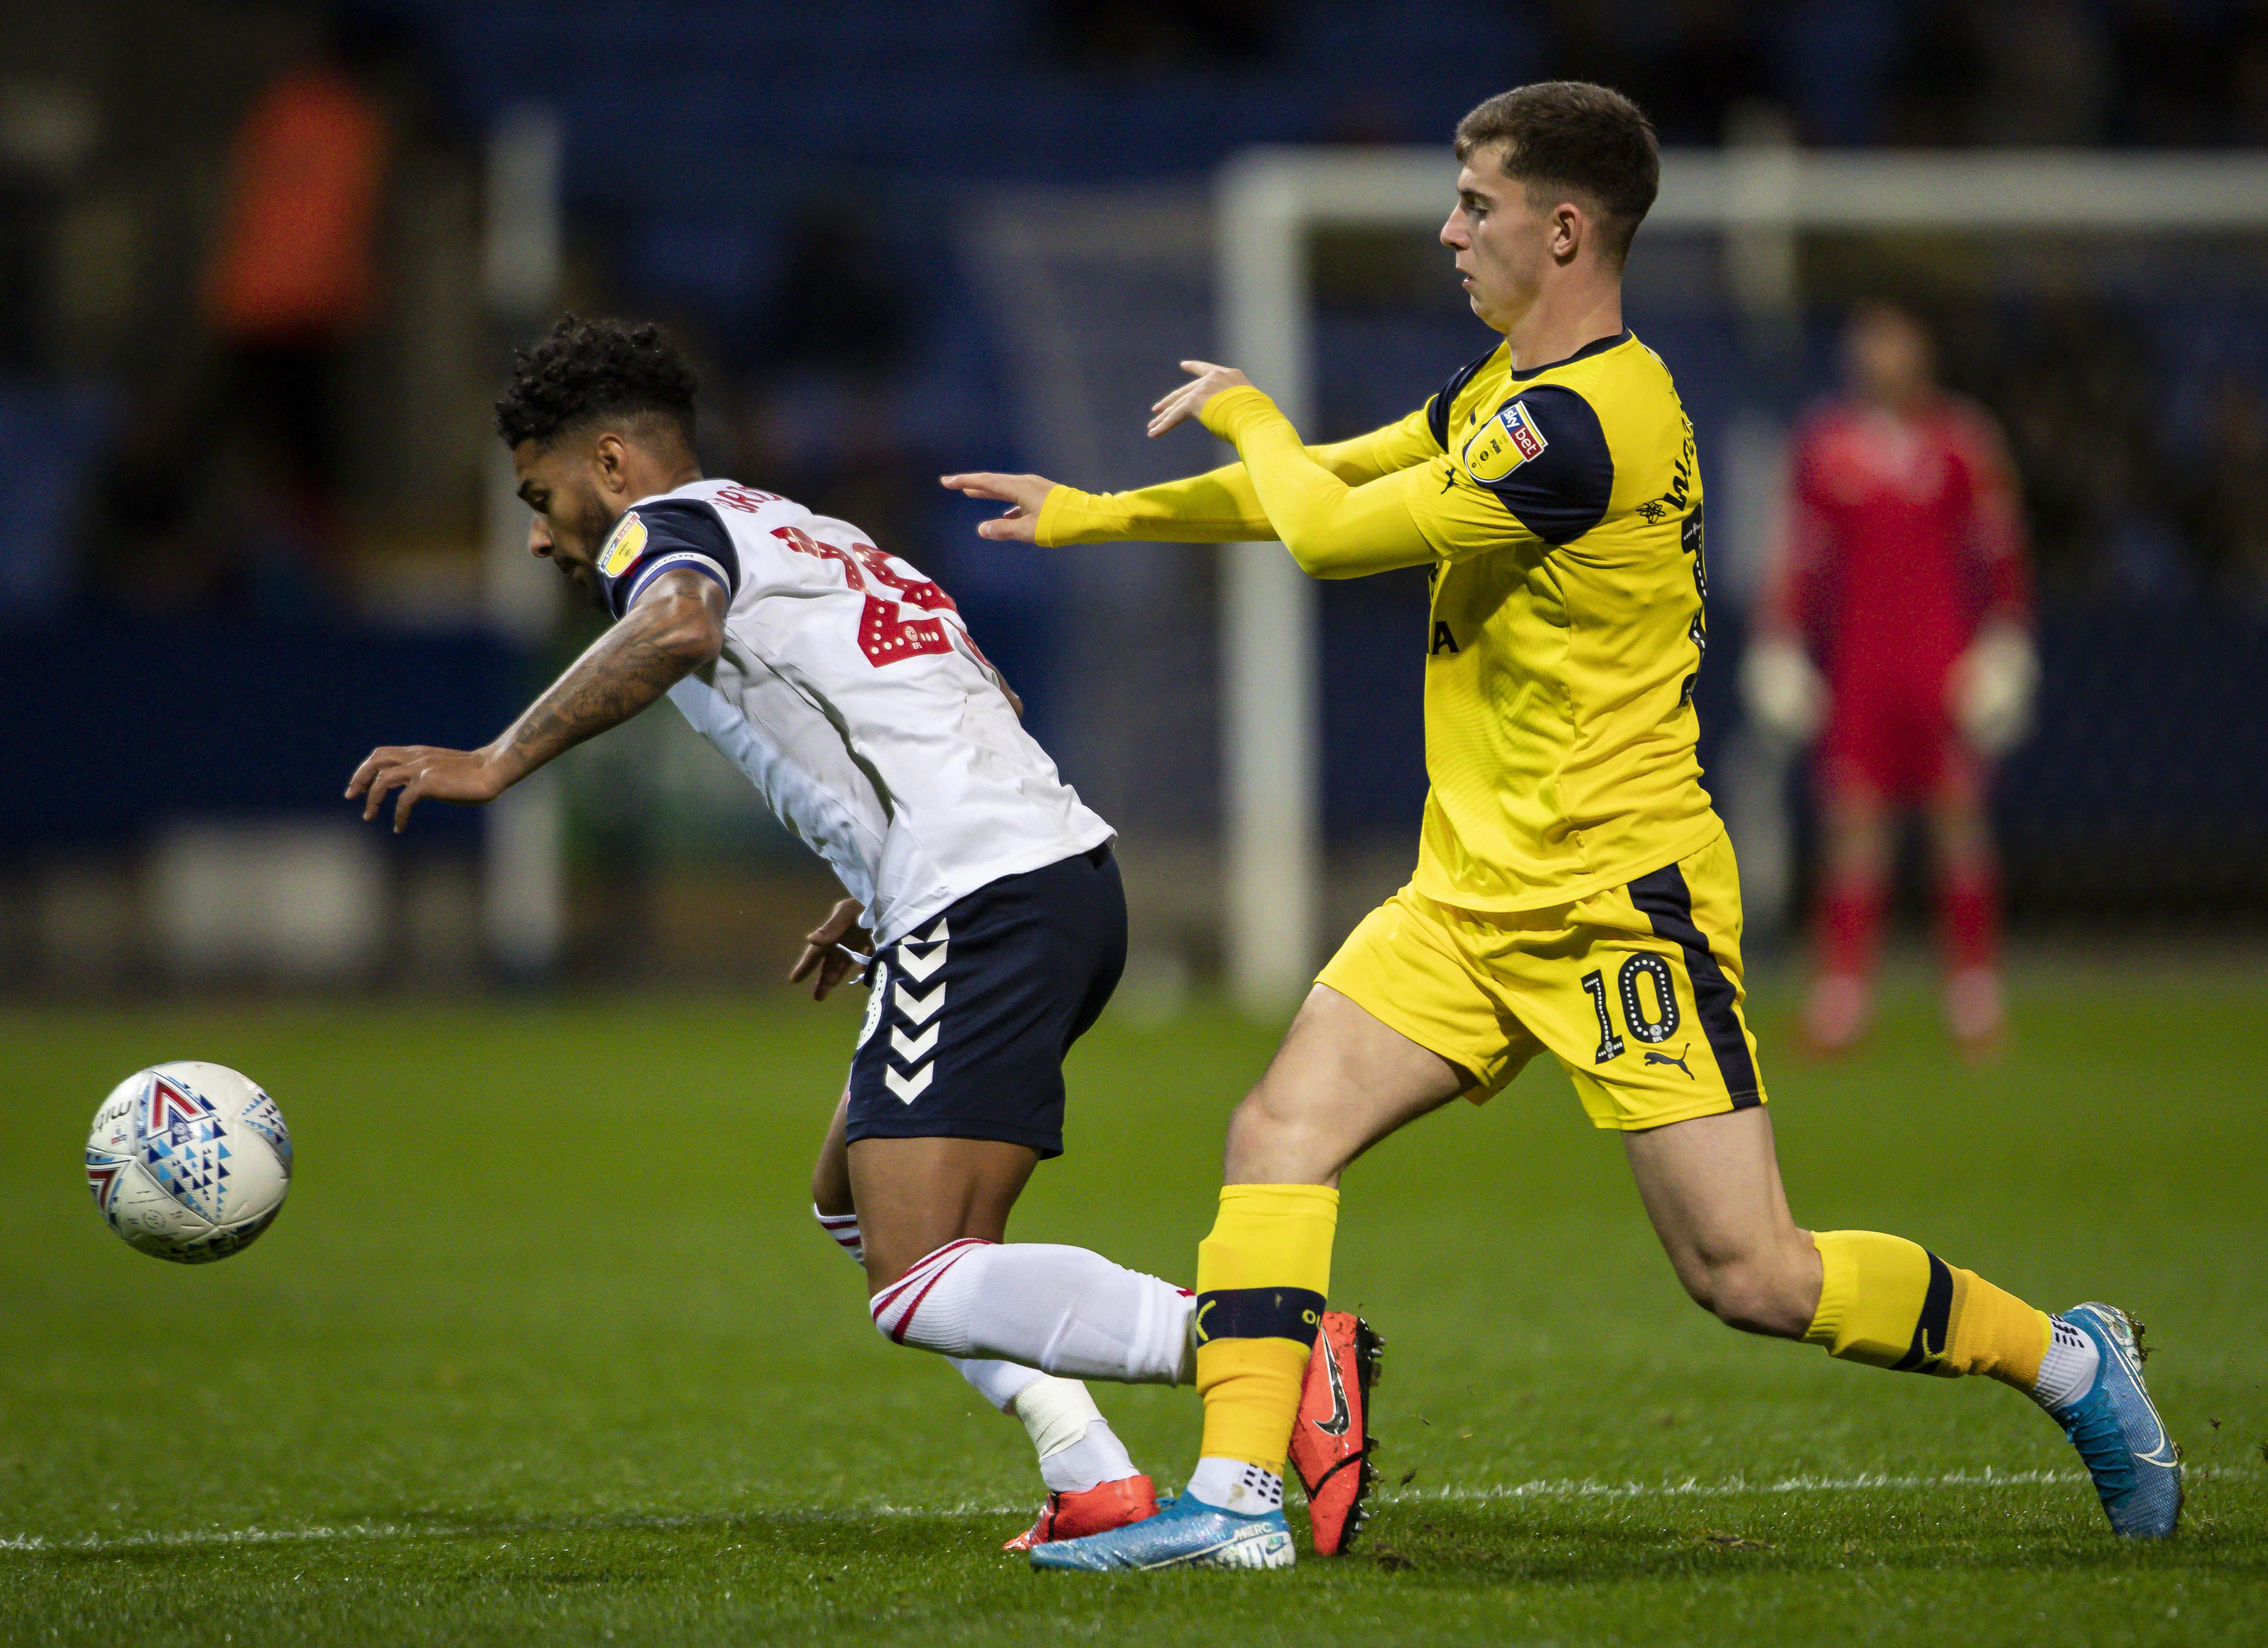 Bolton Wanderers v Oxford United - Sky Bet League One